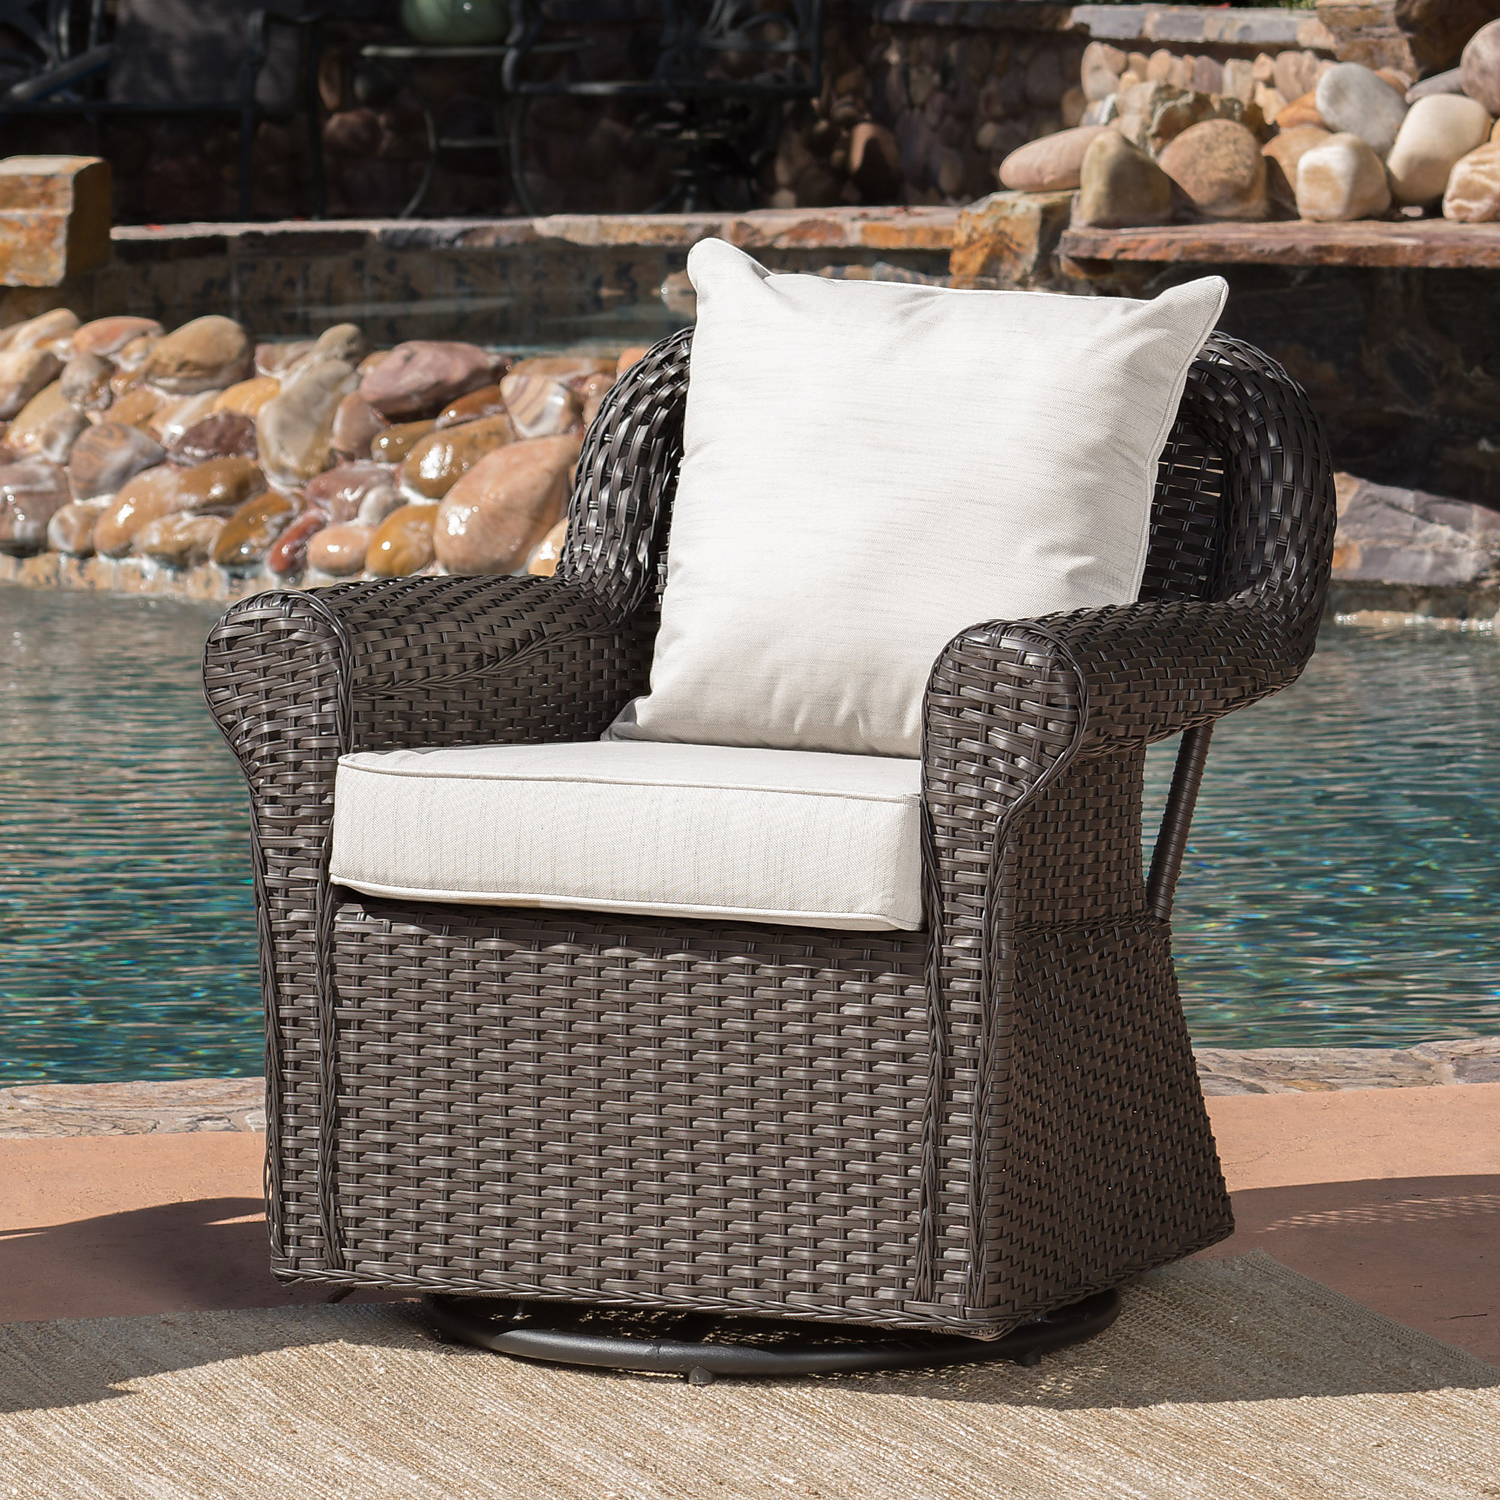 Amira Brown Wicker Swivel Rocking Chair with Beige Cushions